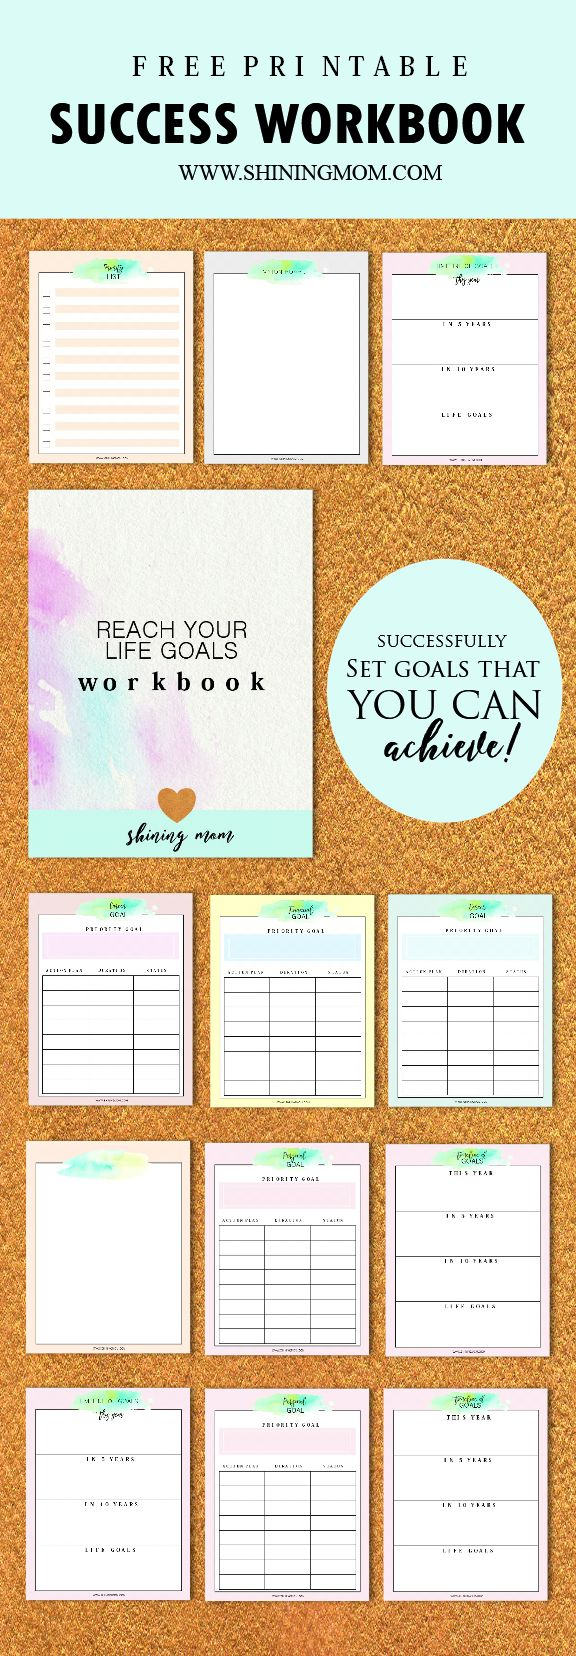 Worksheets Setting Life Goals Worksheet 25 best ideas about goal setting worksheet on pinterest goals free success workbook achieve your life worksheetgoal